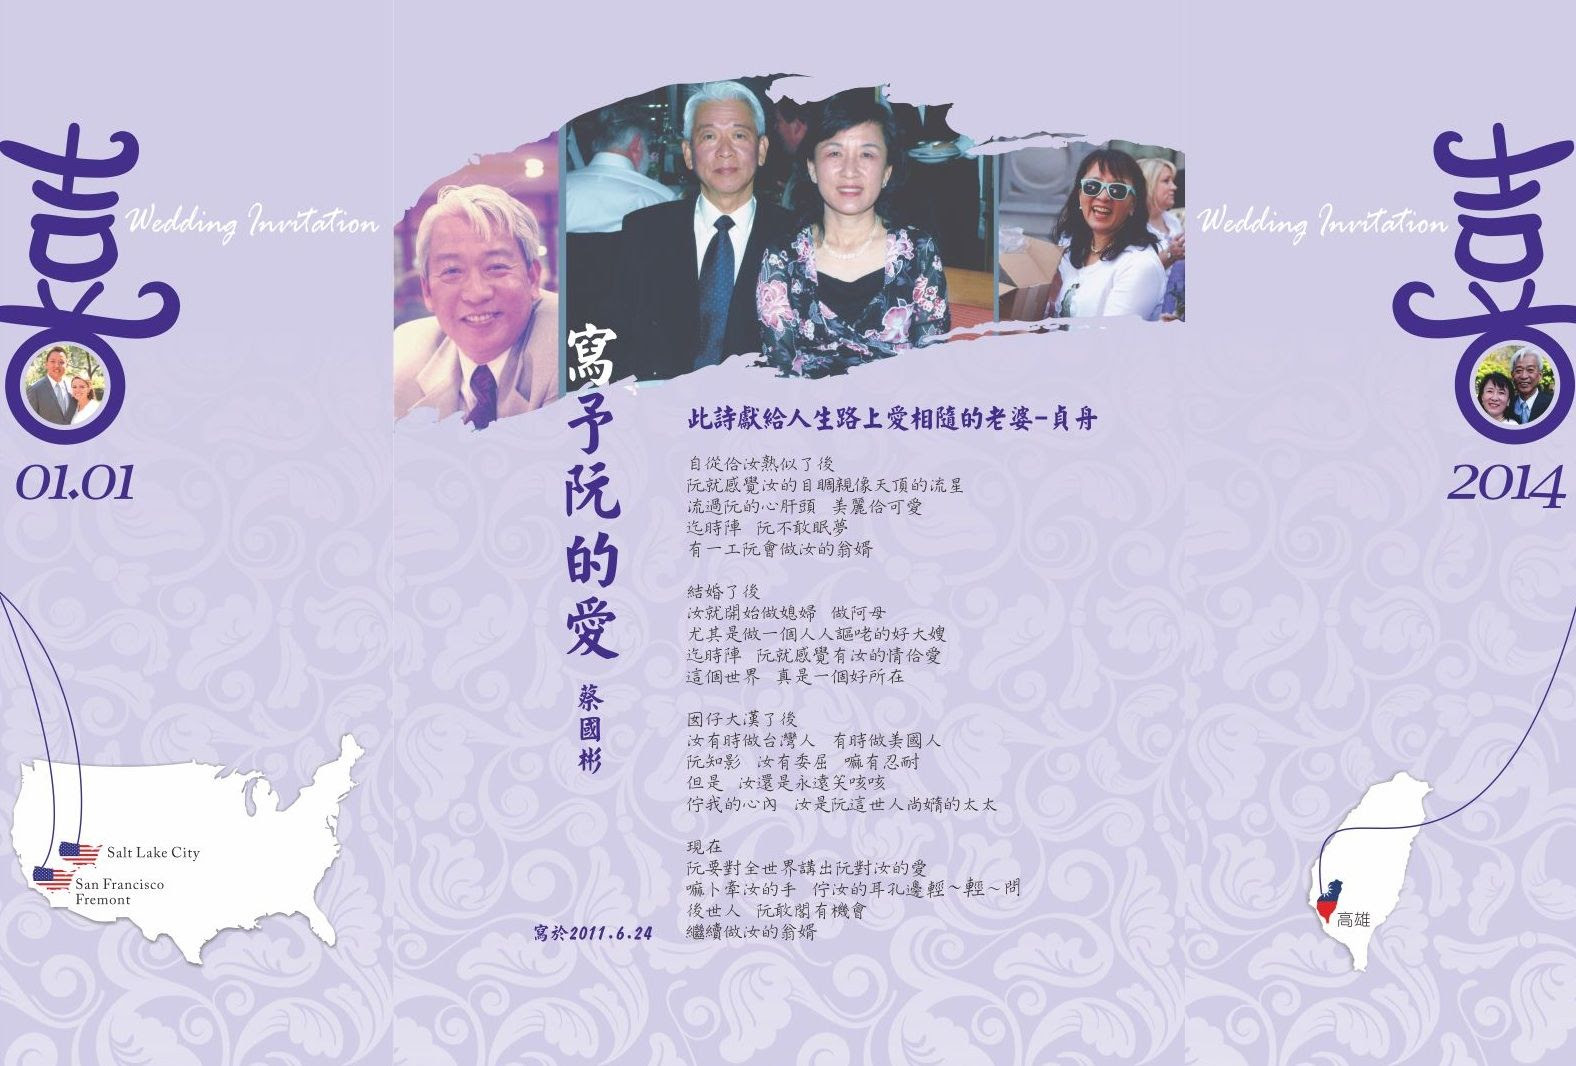 Back of Our Taiwanese Wedding Invitation photo 20131120-9E976587-852180015E2B559C5E16Outside_zps89273bb1.jpg